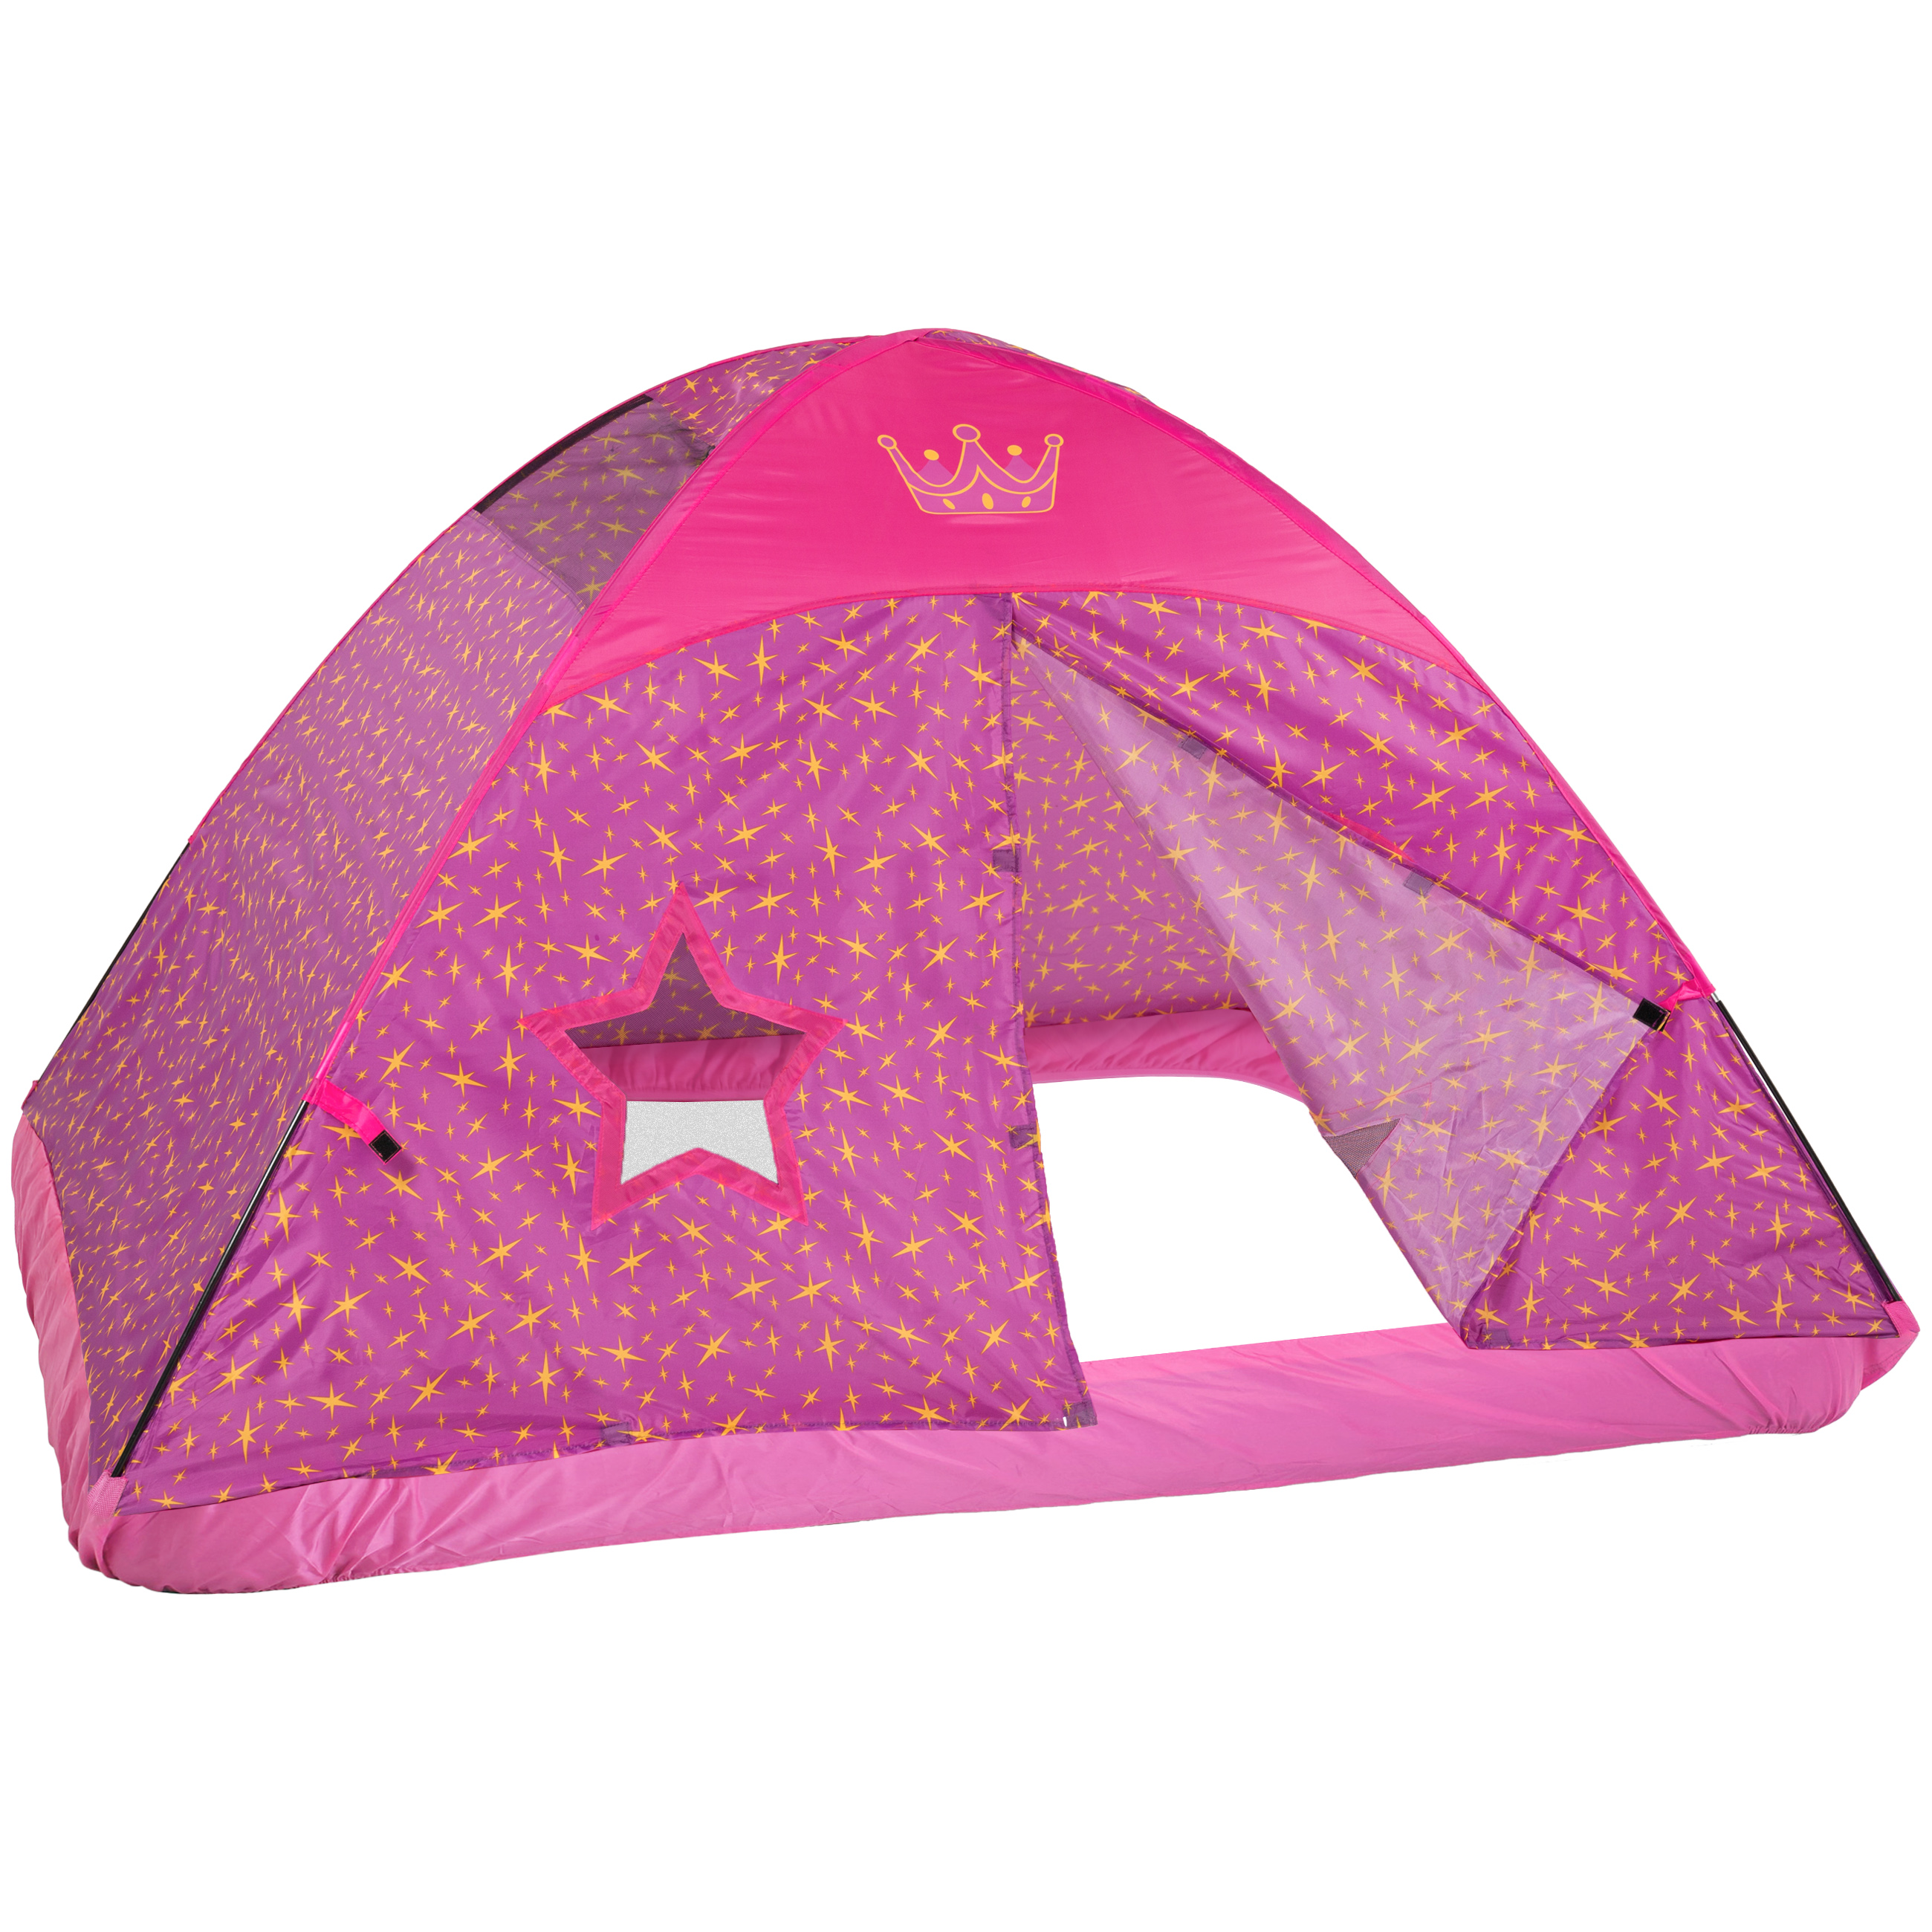 Best Choice Products BCP Pink Princess Full Size Bed Tent Kidu0027s Fantasy Easy Set Up Play  sc 1 st  Walmart : full size bed tent for girl - memphite.com